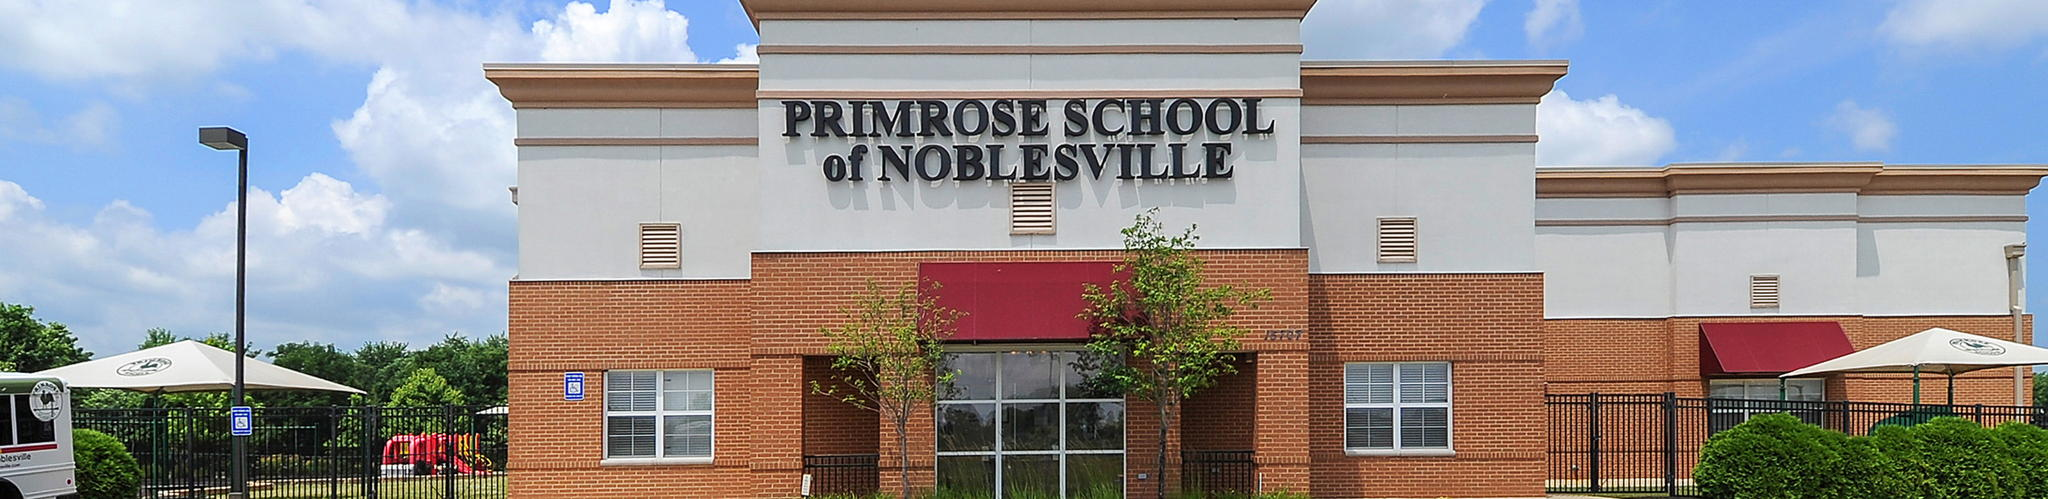 Exterior of a Primrose School of Noblesville